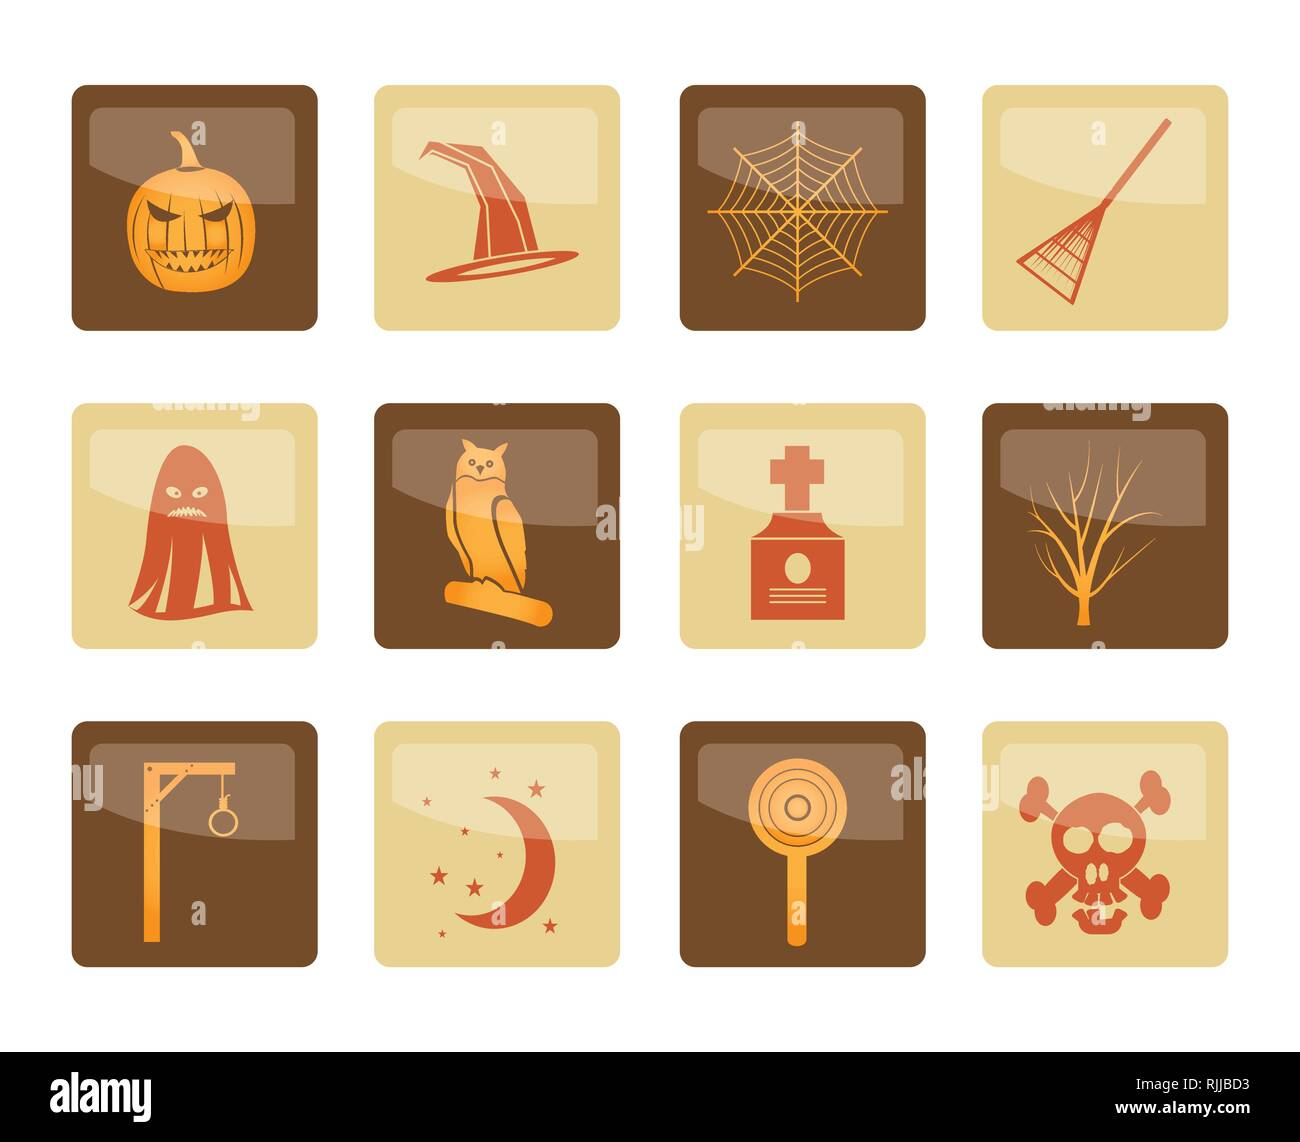 Halloween icon pack  with bat, pumpkin, witch, ghost, hat over brown background - vector icon set - Stock Vector